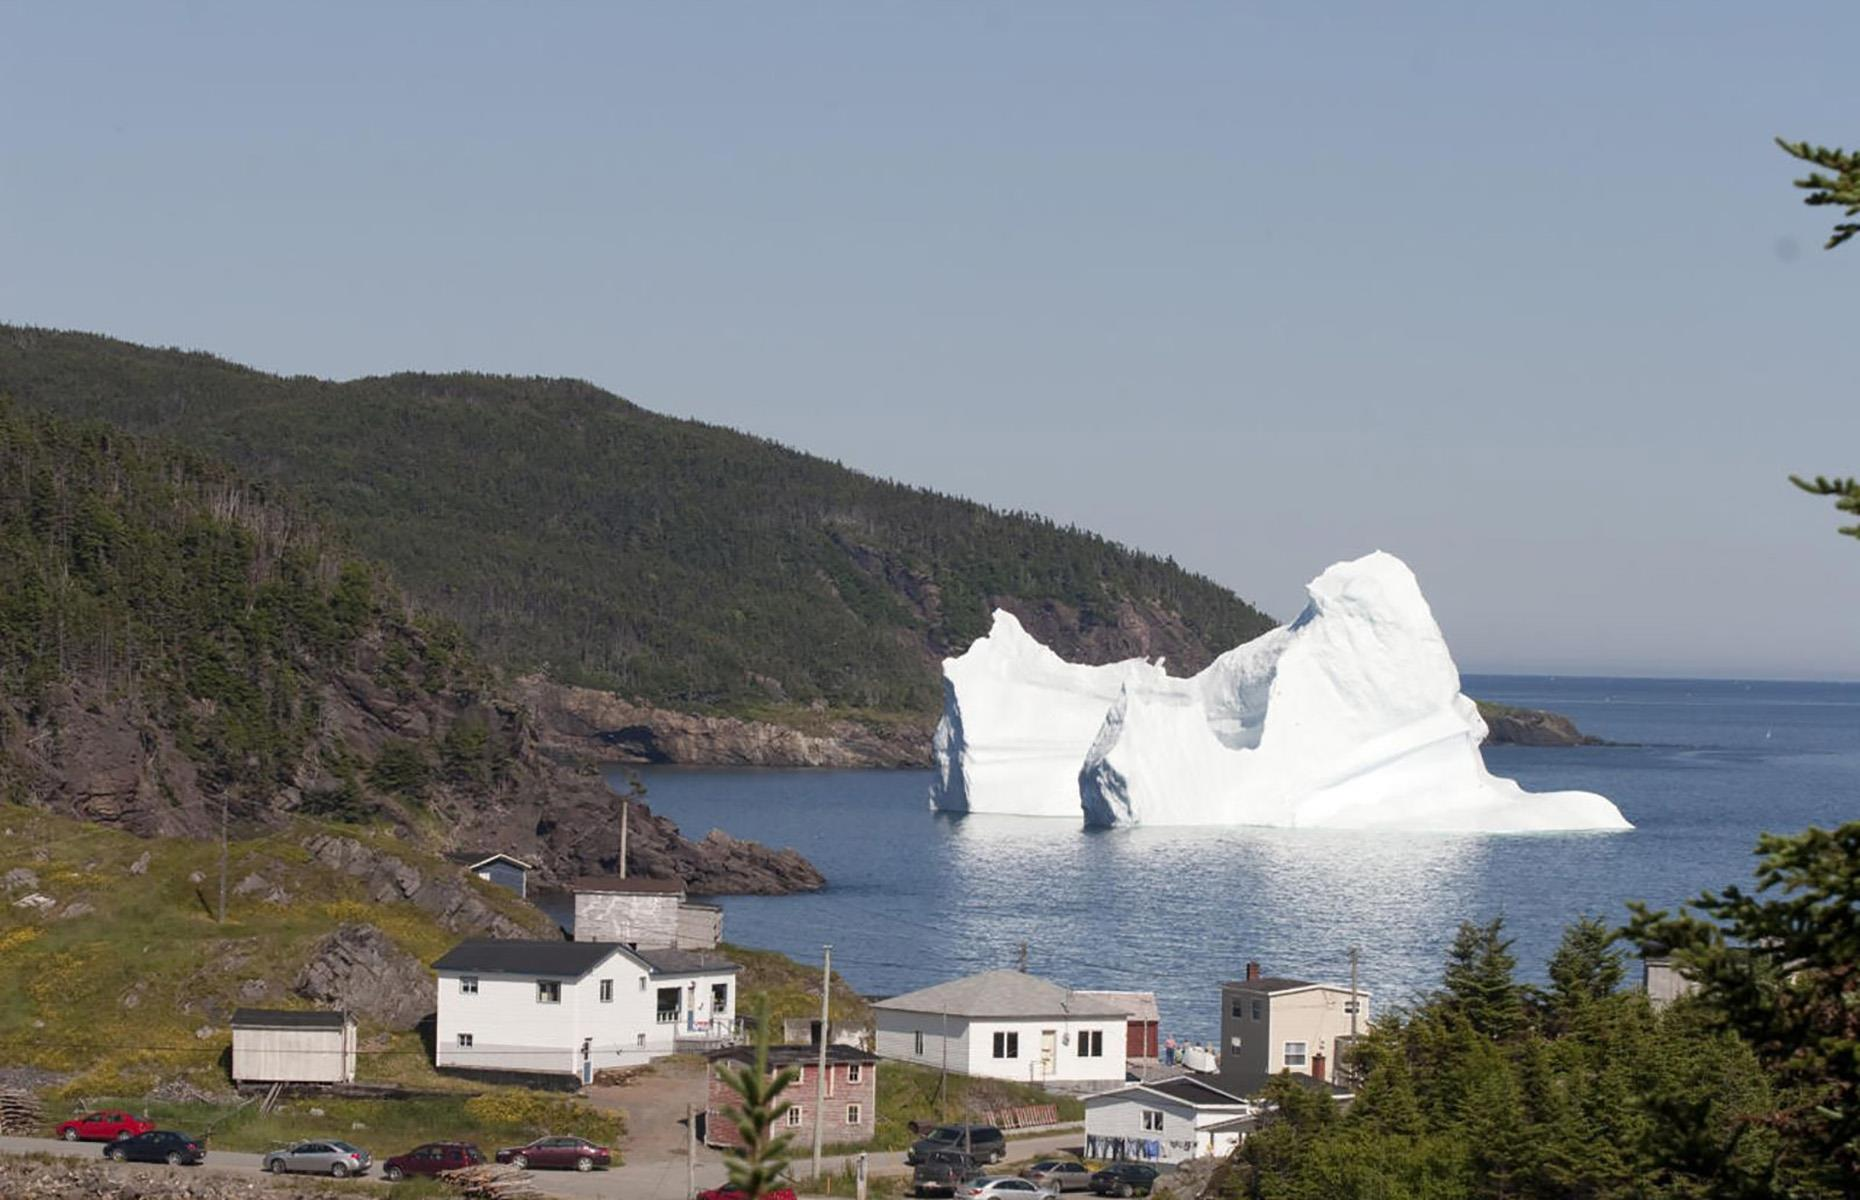 Slide 26 of 41: The so-called Iceberg Alley off the coast of Newfoundland is no stranger to massive icebergs and every year in spring all shapes and sizes of these frozen giants slowly drift past. Funnily enough, this event coincides with the annual whale migration in the opposite direction making for quite the spectacle.